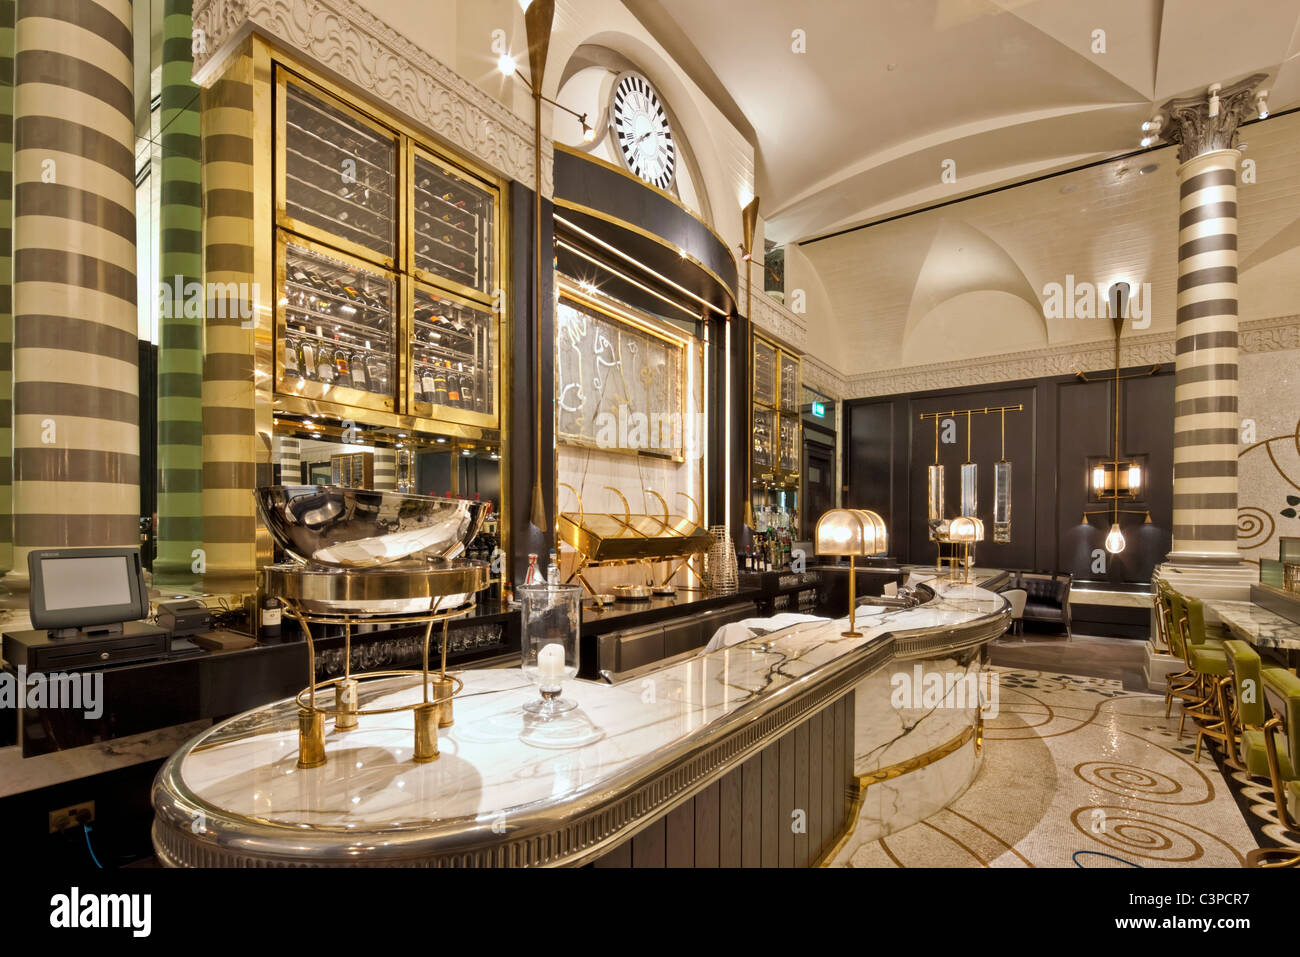 Massimo Restaurant And Oyster Bar